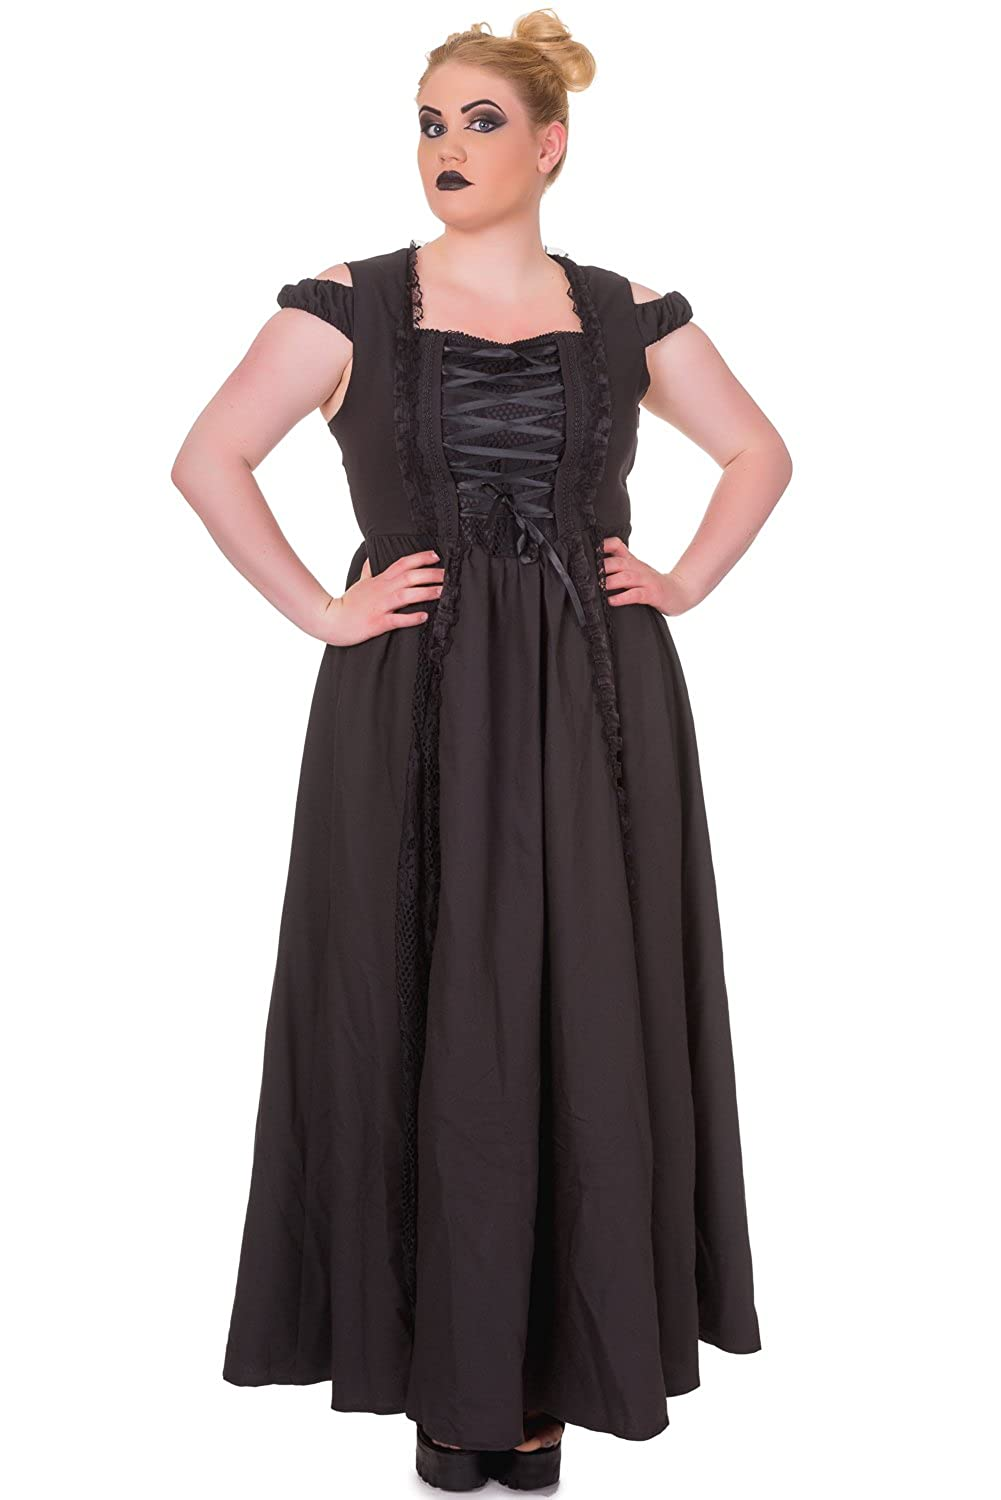 Steampunk Dresses | Women & Girl Costumes Plus Gothic Victorian Dark Side Raven Witch Black Long Corset Lace up Party Dress $85.95 AT vintagedancer.com